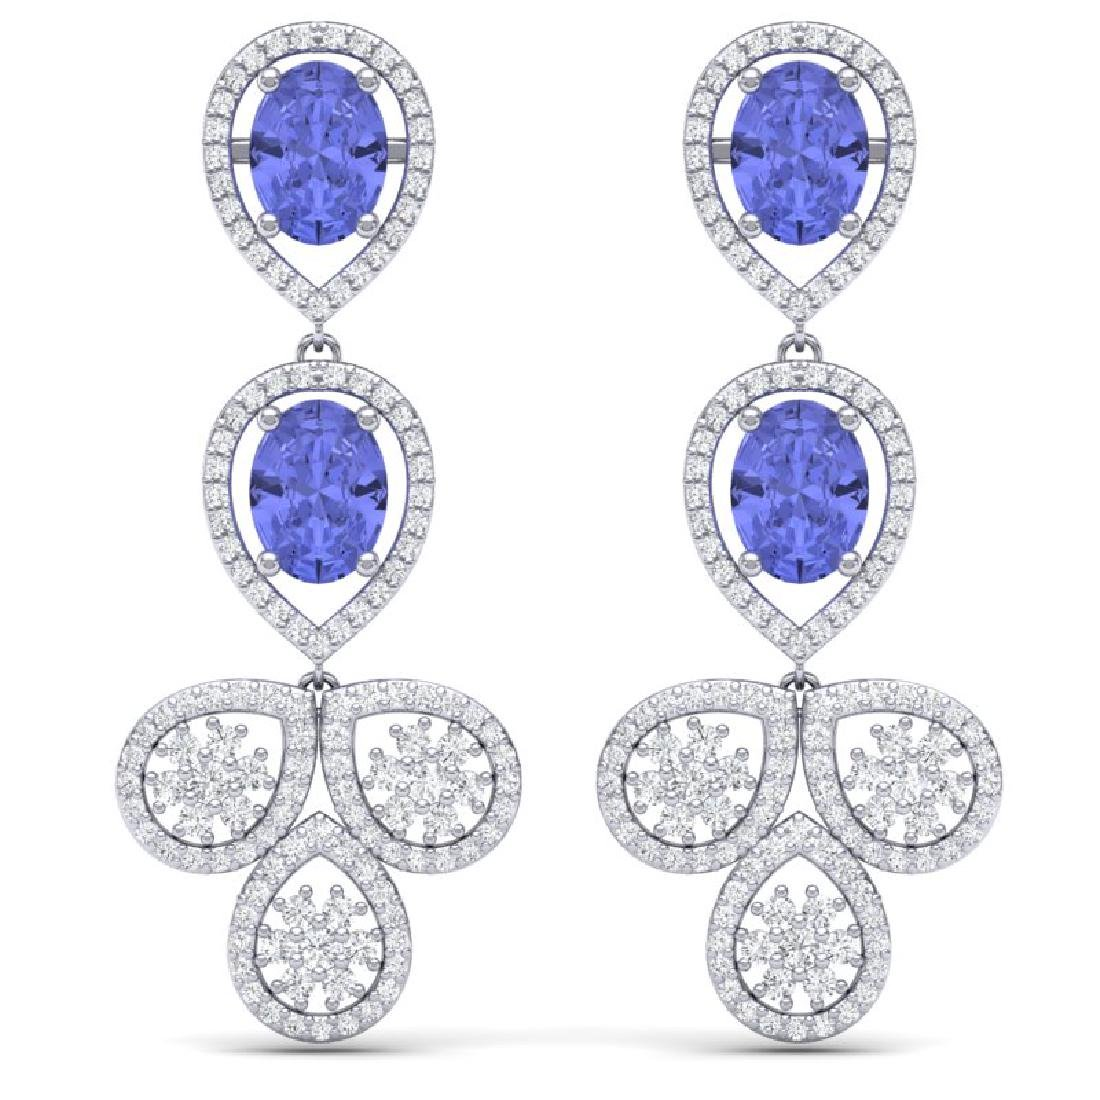 8.75 CTW Royalty Tanzanite & VS Diamond Earrings 18K